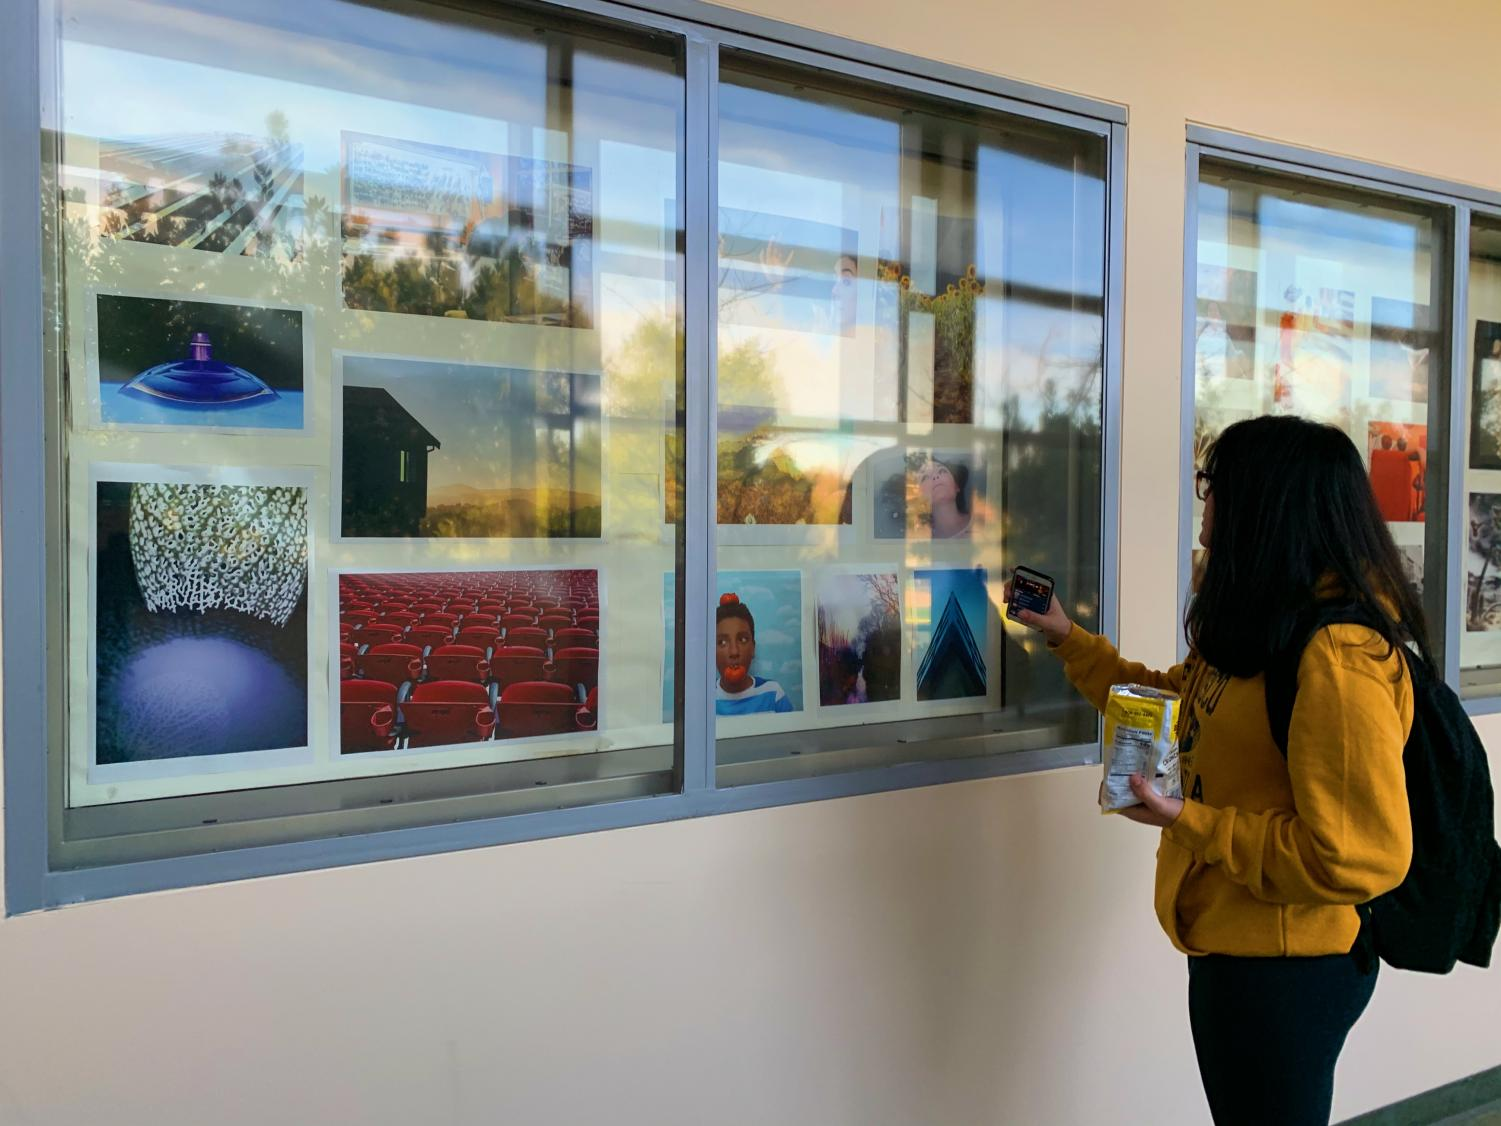 In F Hall, the walls are covered in displays, full of student photos, paintings, and drawings. The walls serve as an exposition of their hard work.